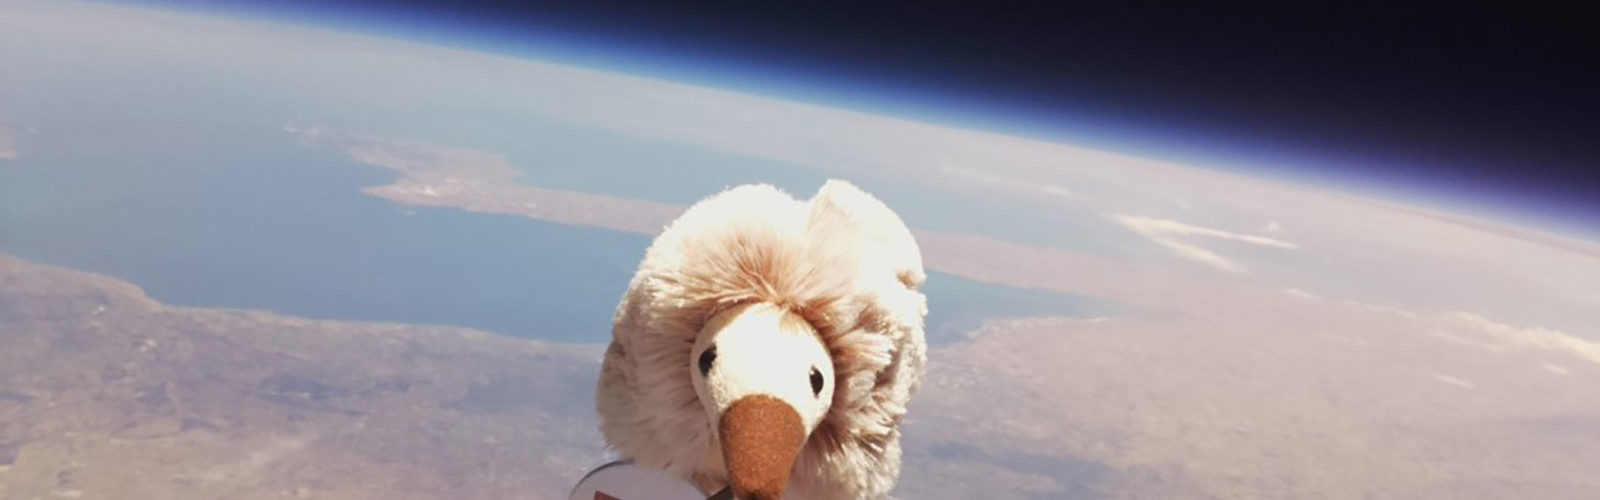 The toy echidna 32 kilometres above the ground. Photo: supplied